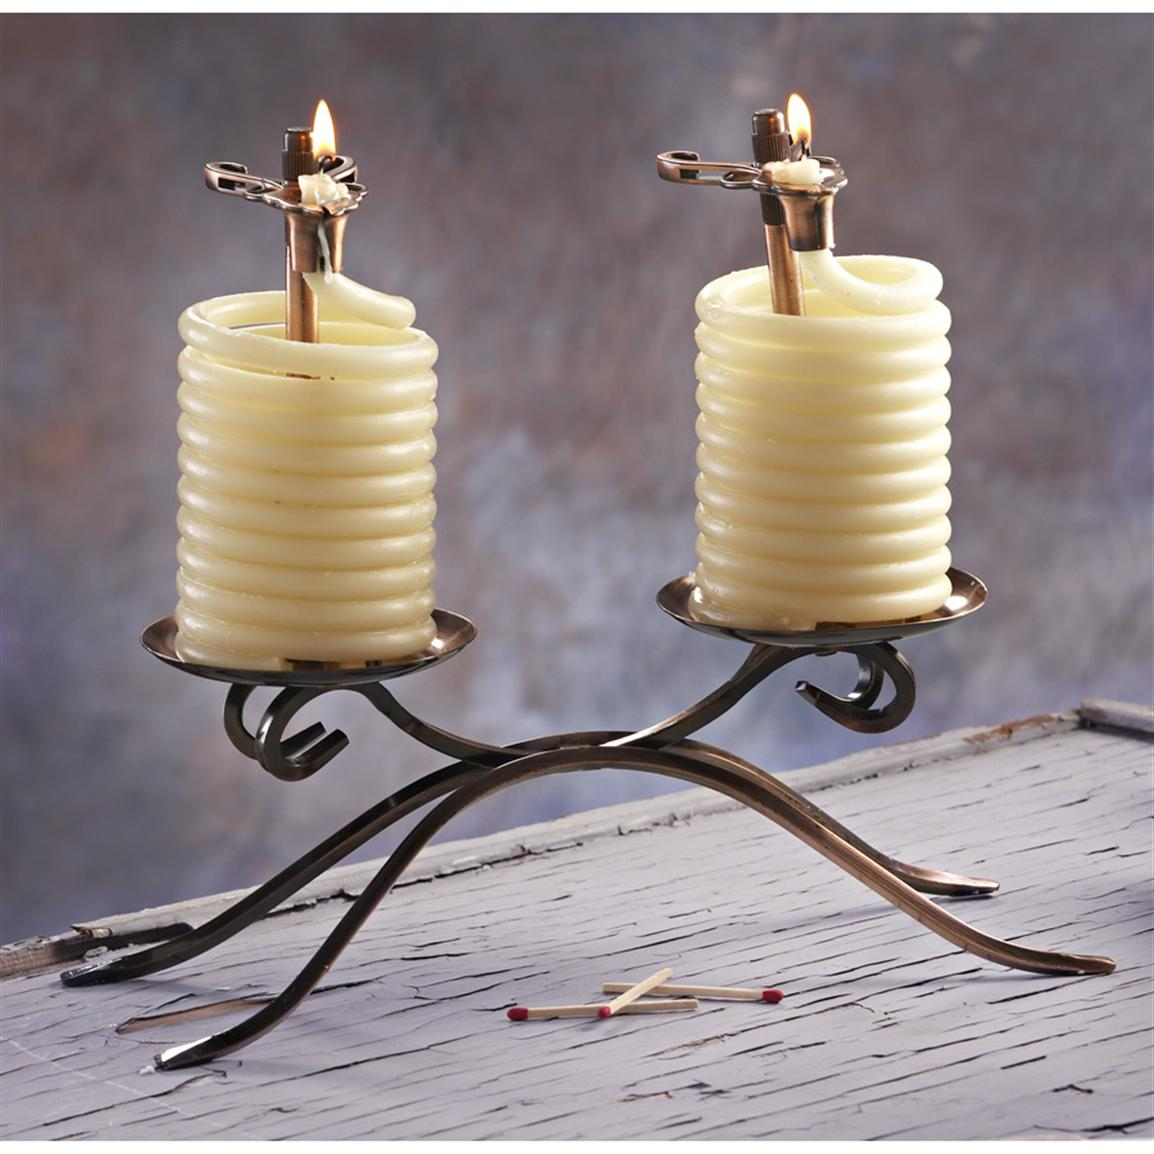 Candle by the Hour; Two 36 Hour Beeswax Coil Candle Centerpiece